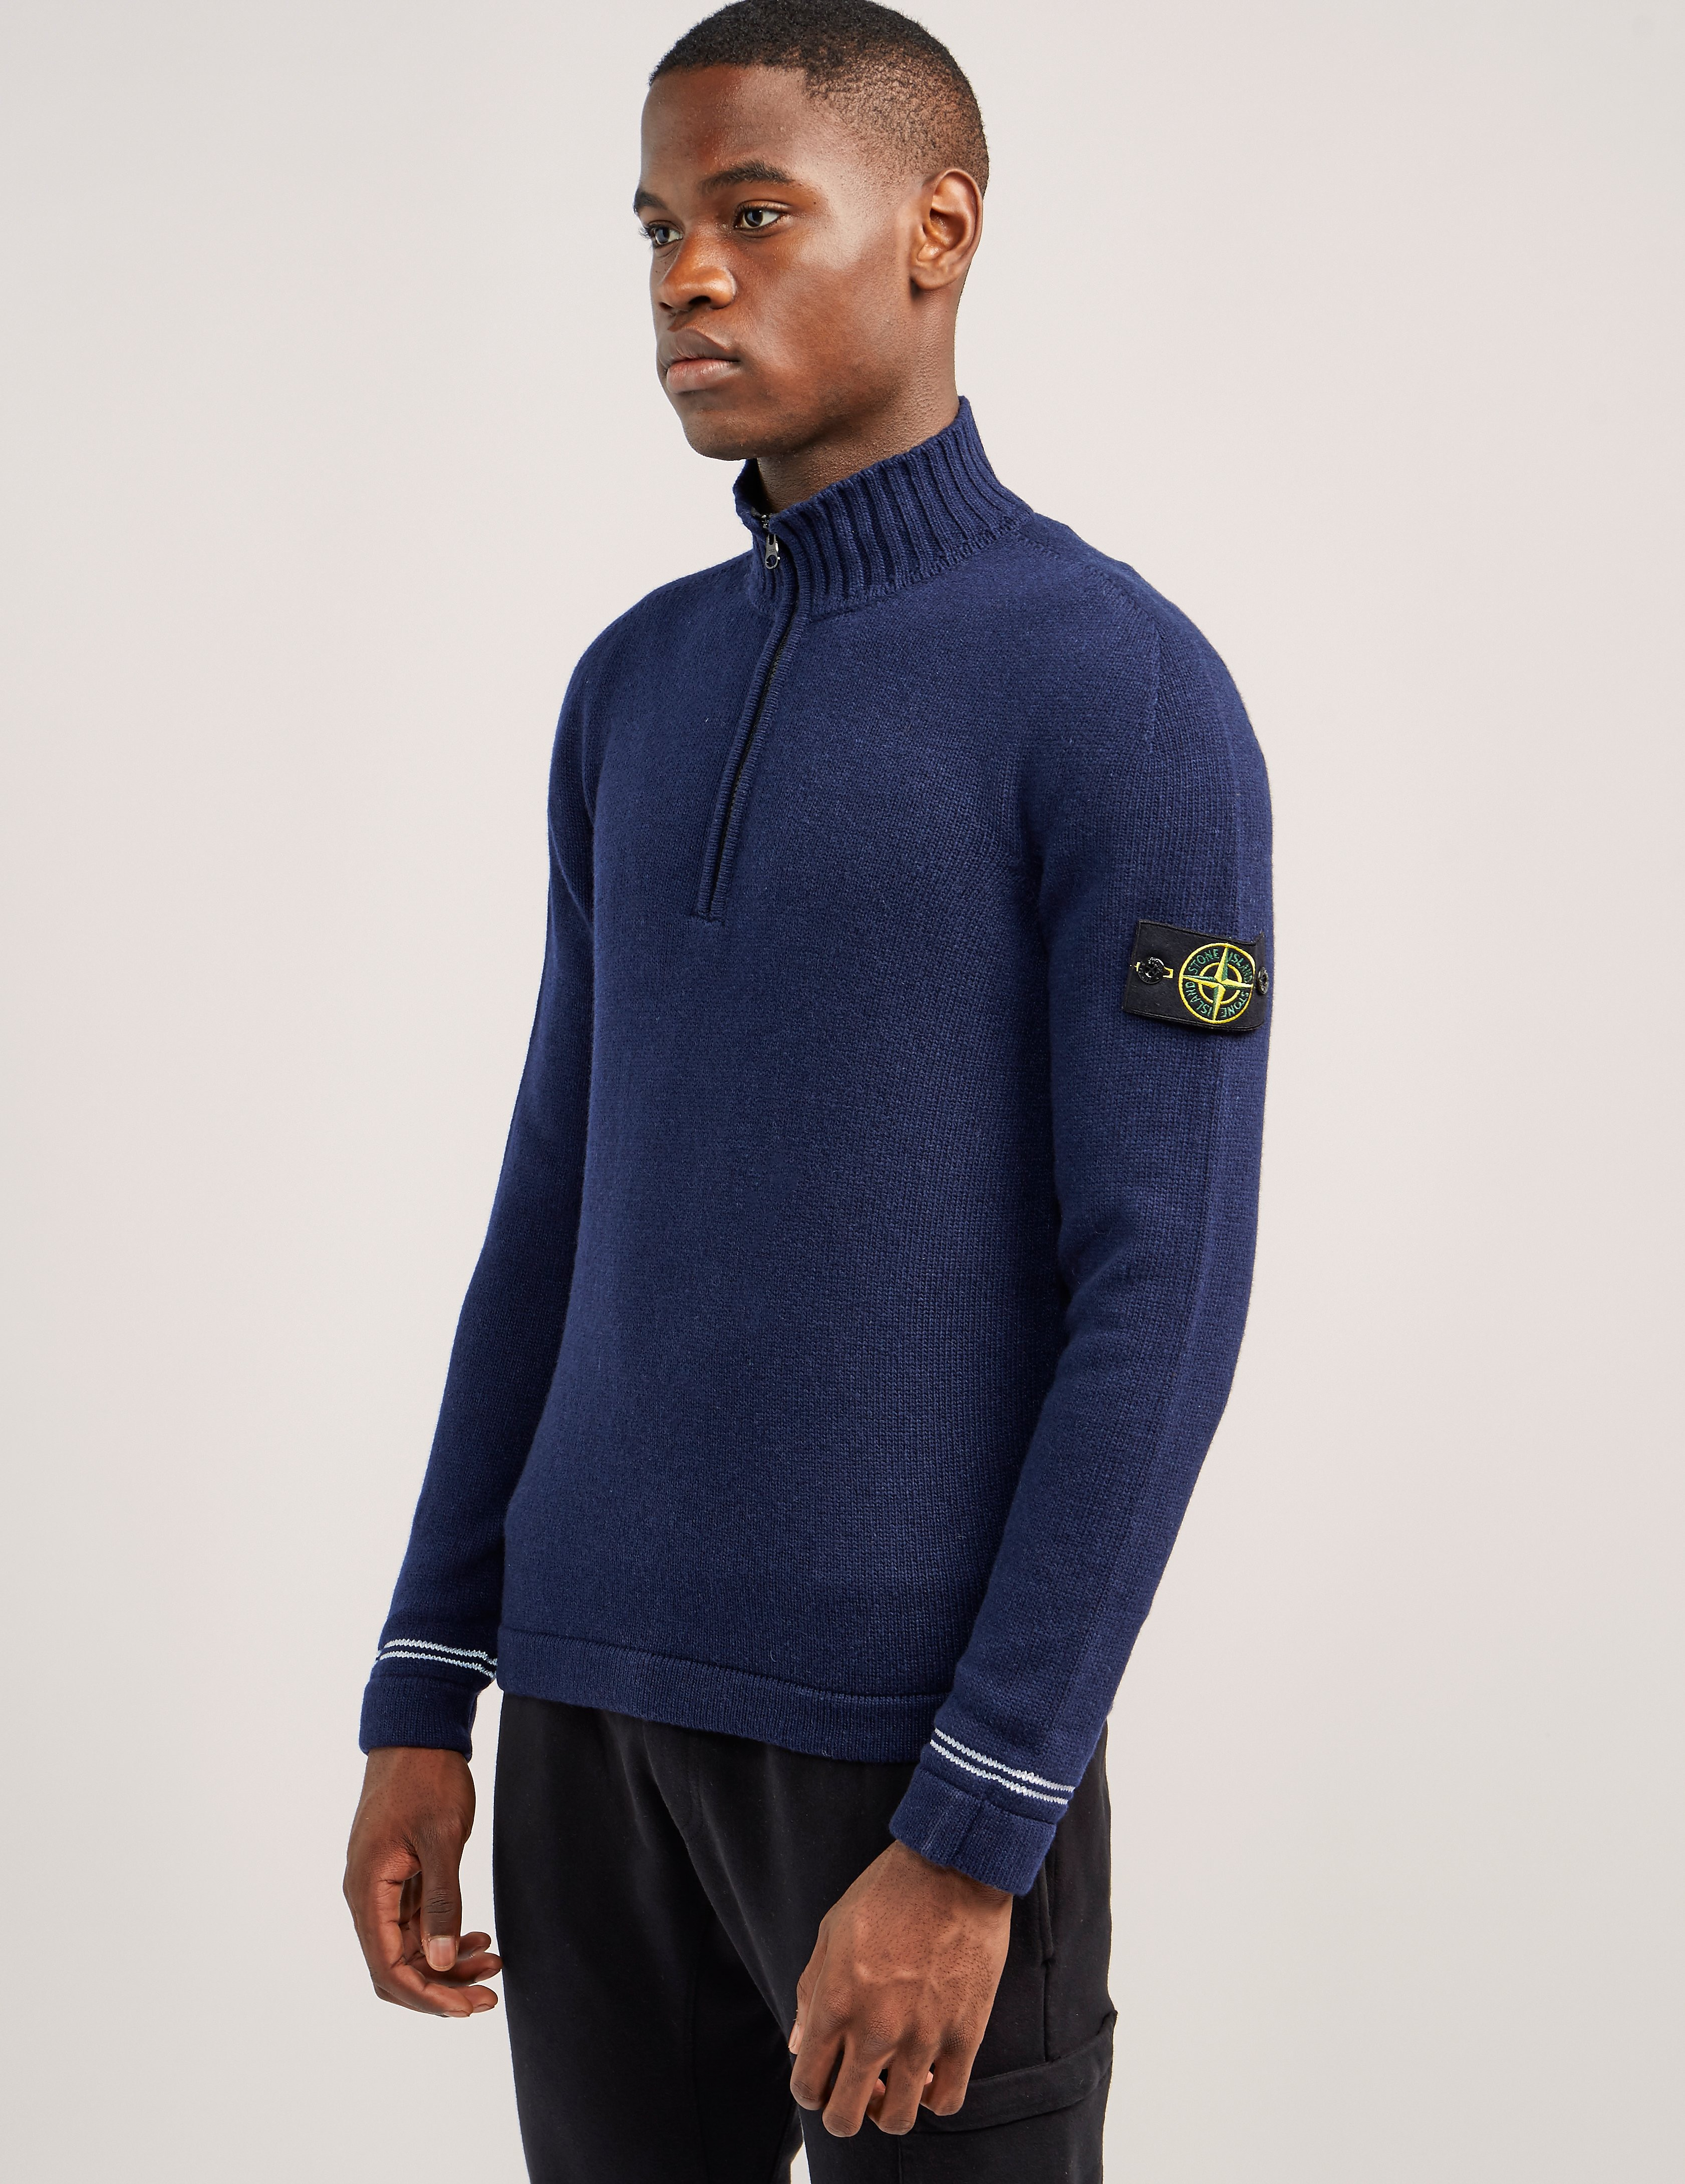 Stone Island Tipped 1/4 Zip Knit